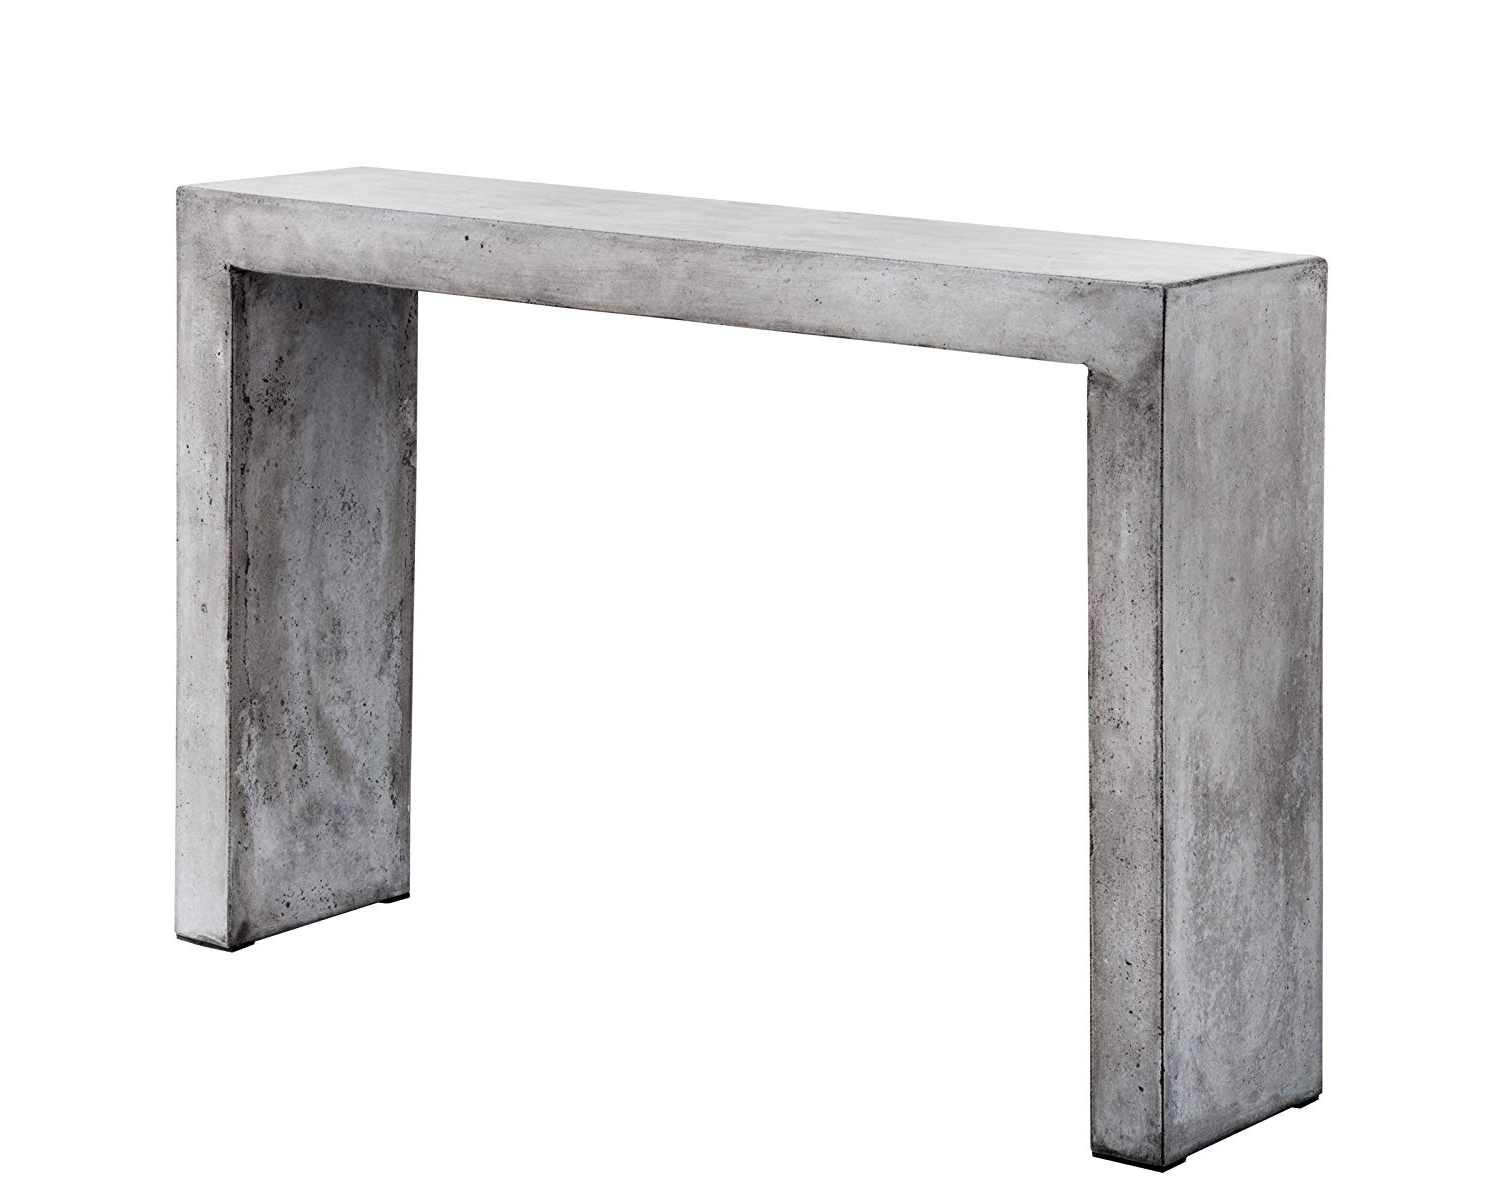 Parsons Black Marble Top & Stainless Steel Base 48x16 Console Tables Pertaining To Favorite Amazon: Sunpan Modern Axle Console Table, Grey: Kitchen & Dining (View 4 of 20)